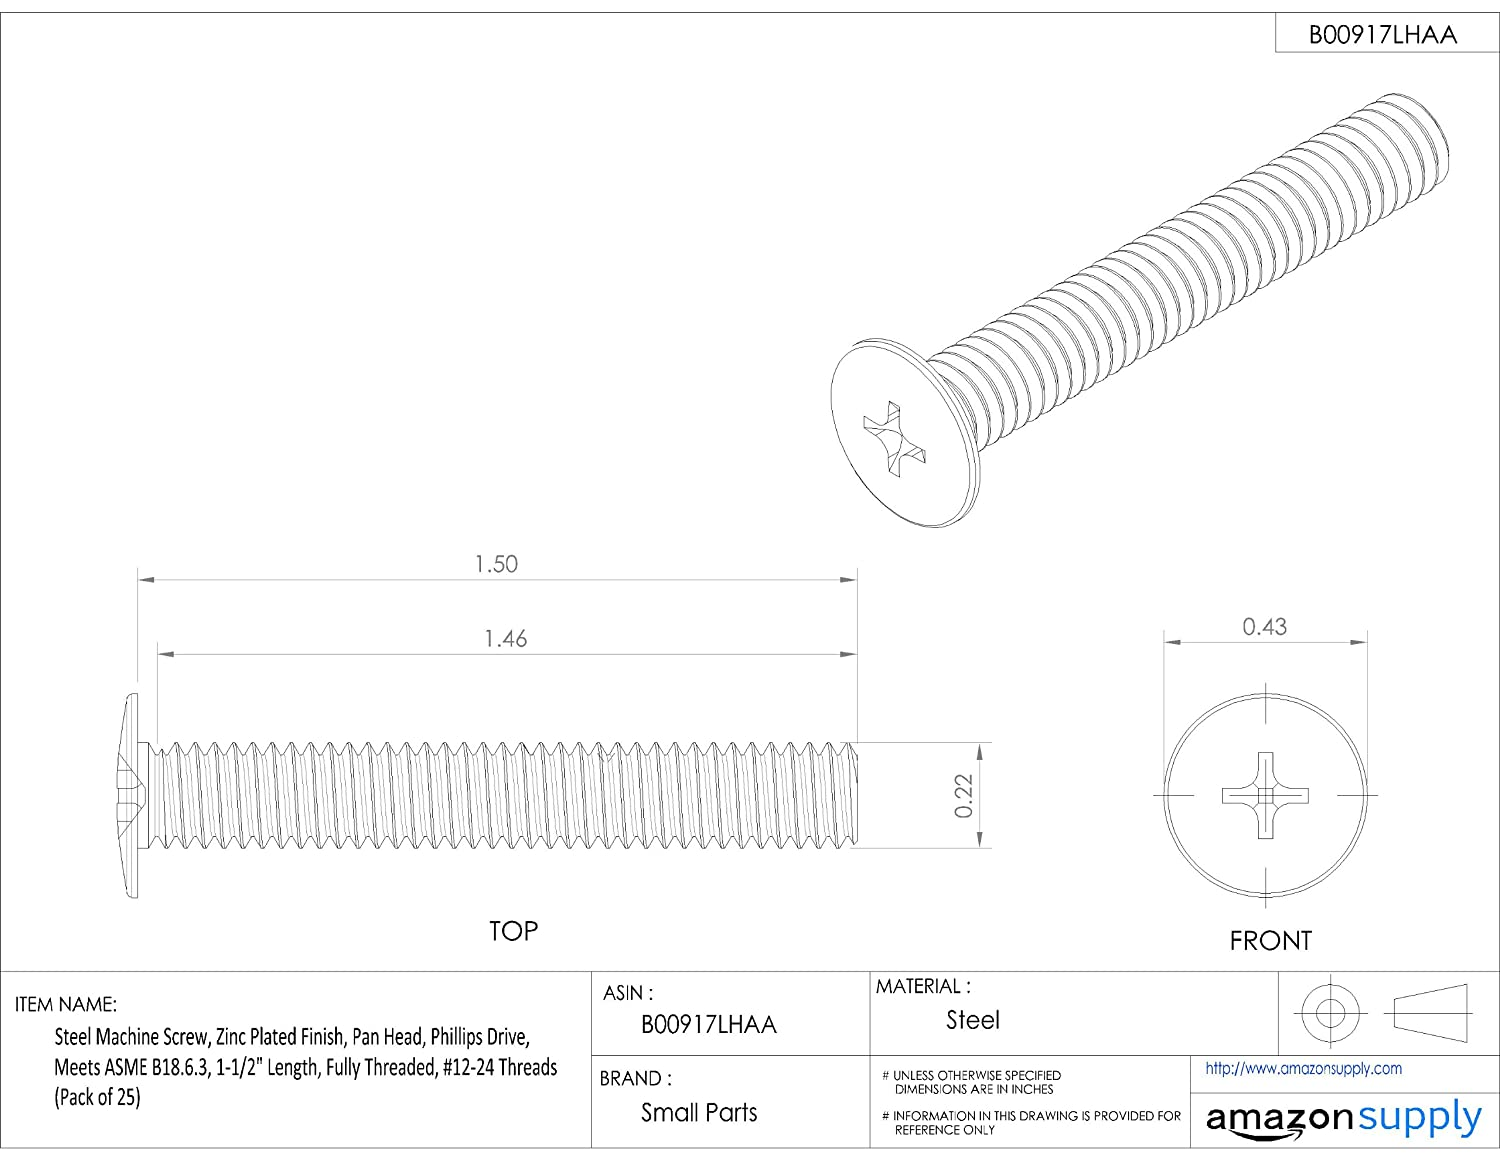 Pan Head Meets ASME B18.6.3 Steel Machine Screw Pack of 100 Fully Threaded #3-48 UNC Threads 3//4 Length Phillips Drive Zinc Plated Finish